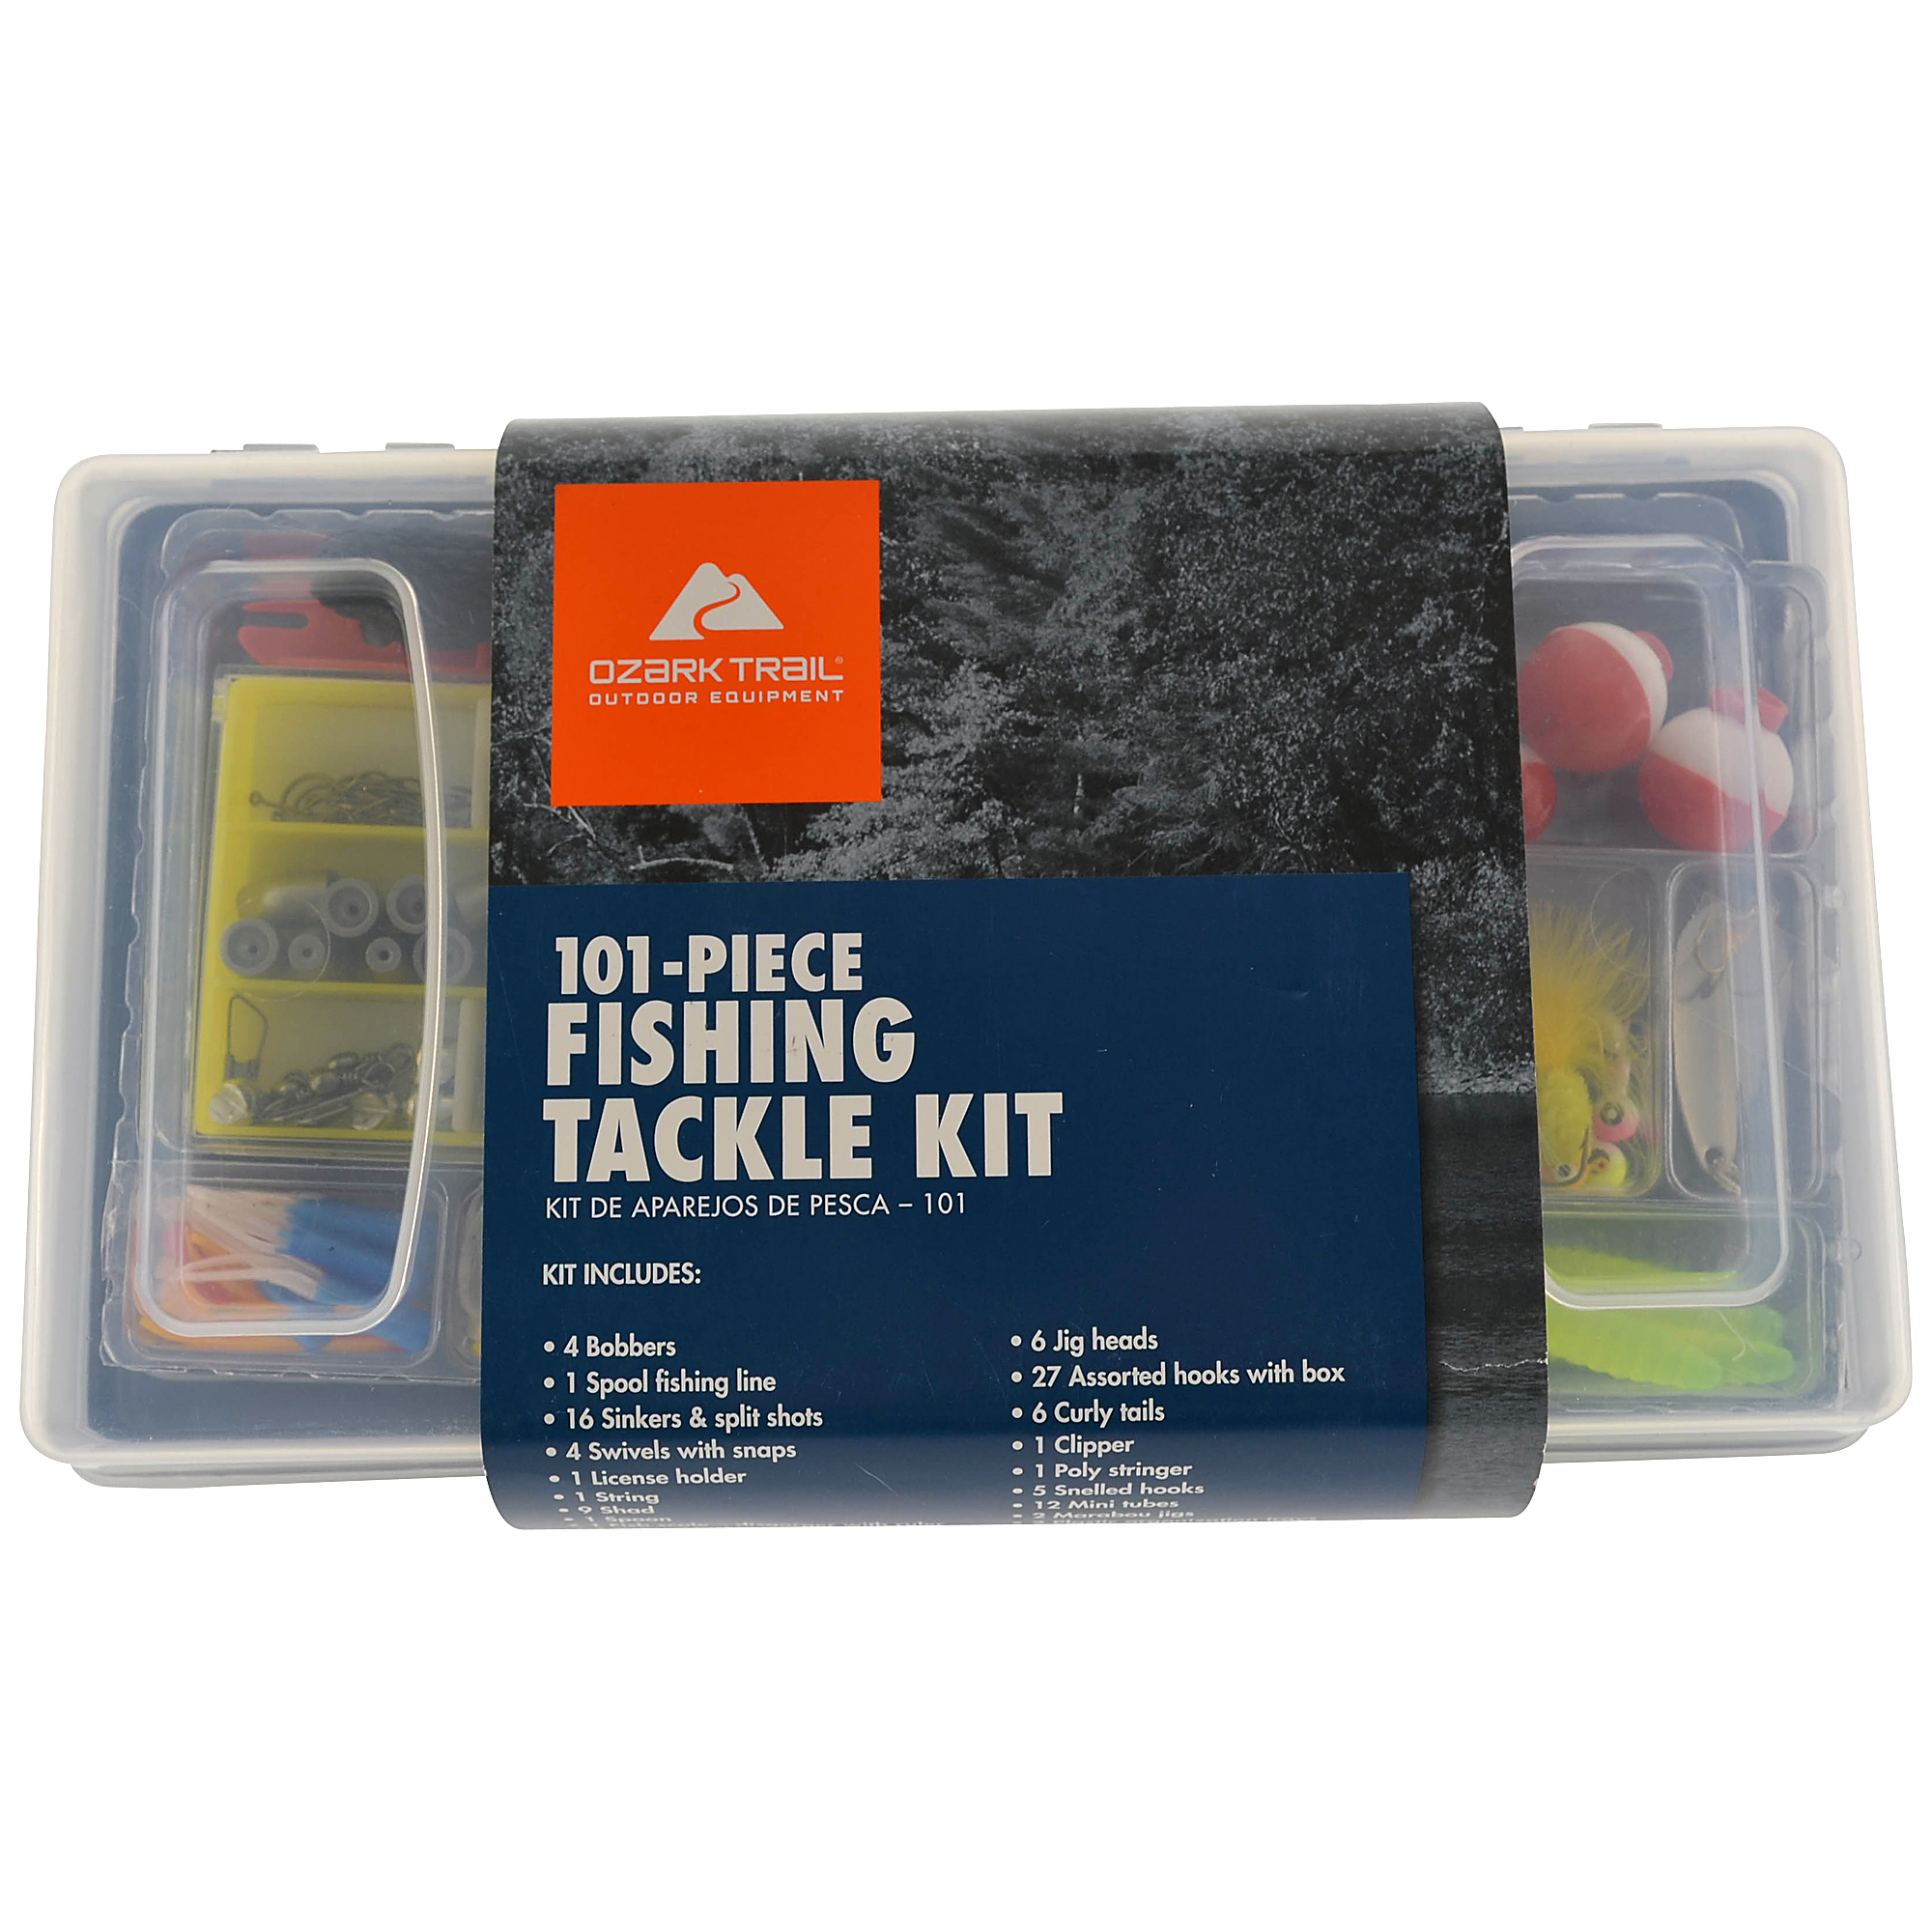 Ozark Trail 101-Piece Fishing Tackle Kit